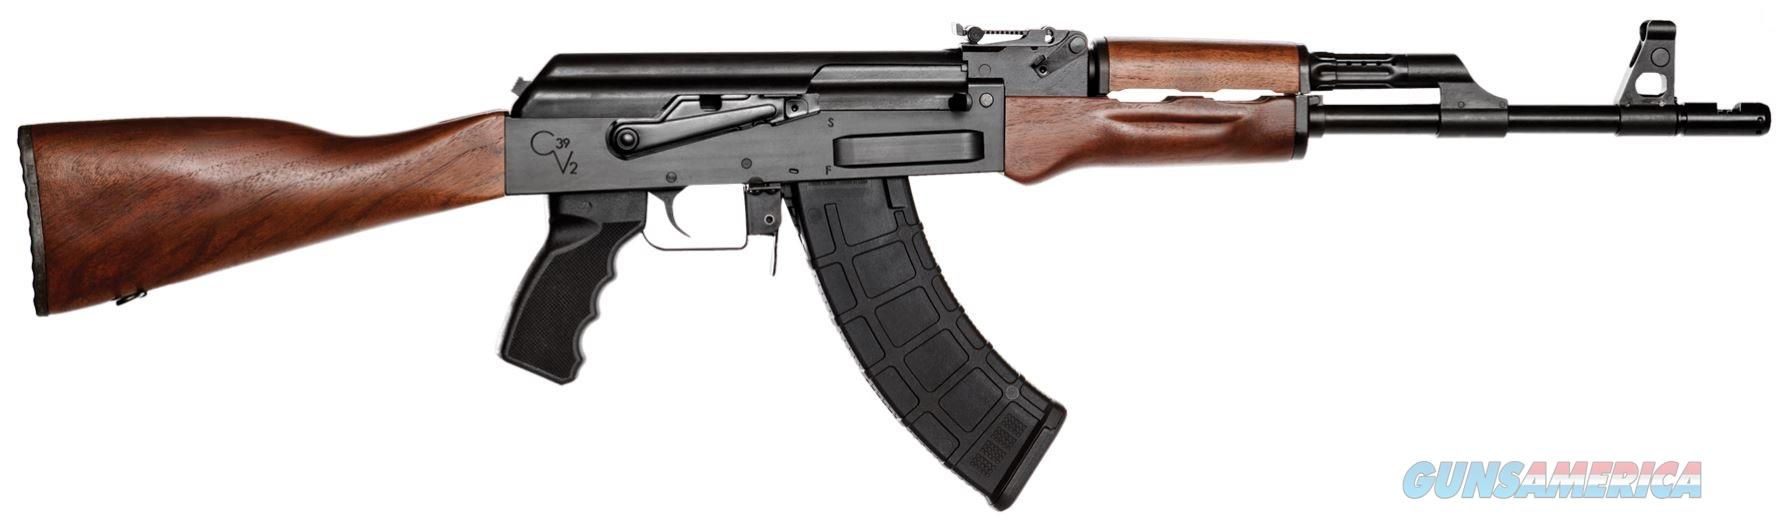 "Century Arms C39 V2 7.62x39mm 16.5"" 30+1   Guns > Rifles > Century International Arms - Rifles > Rifles"